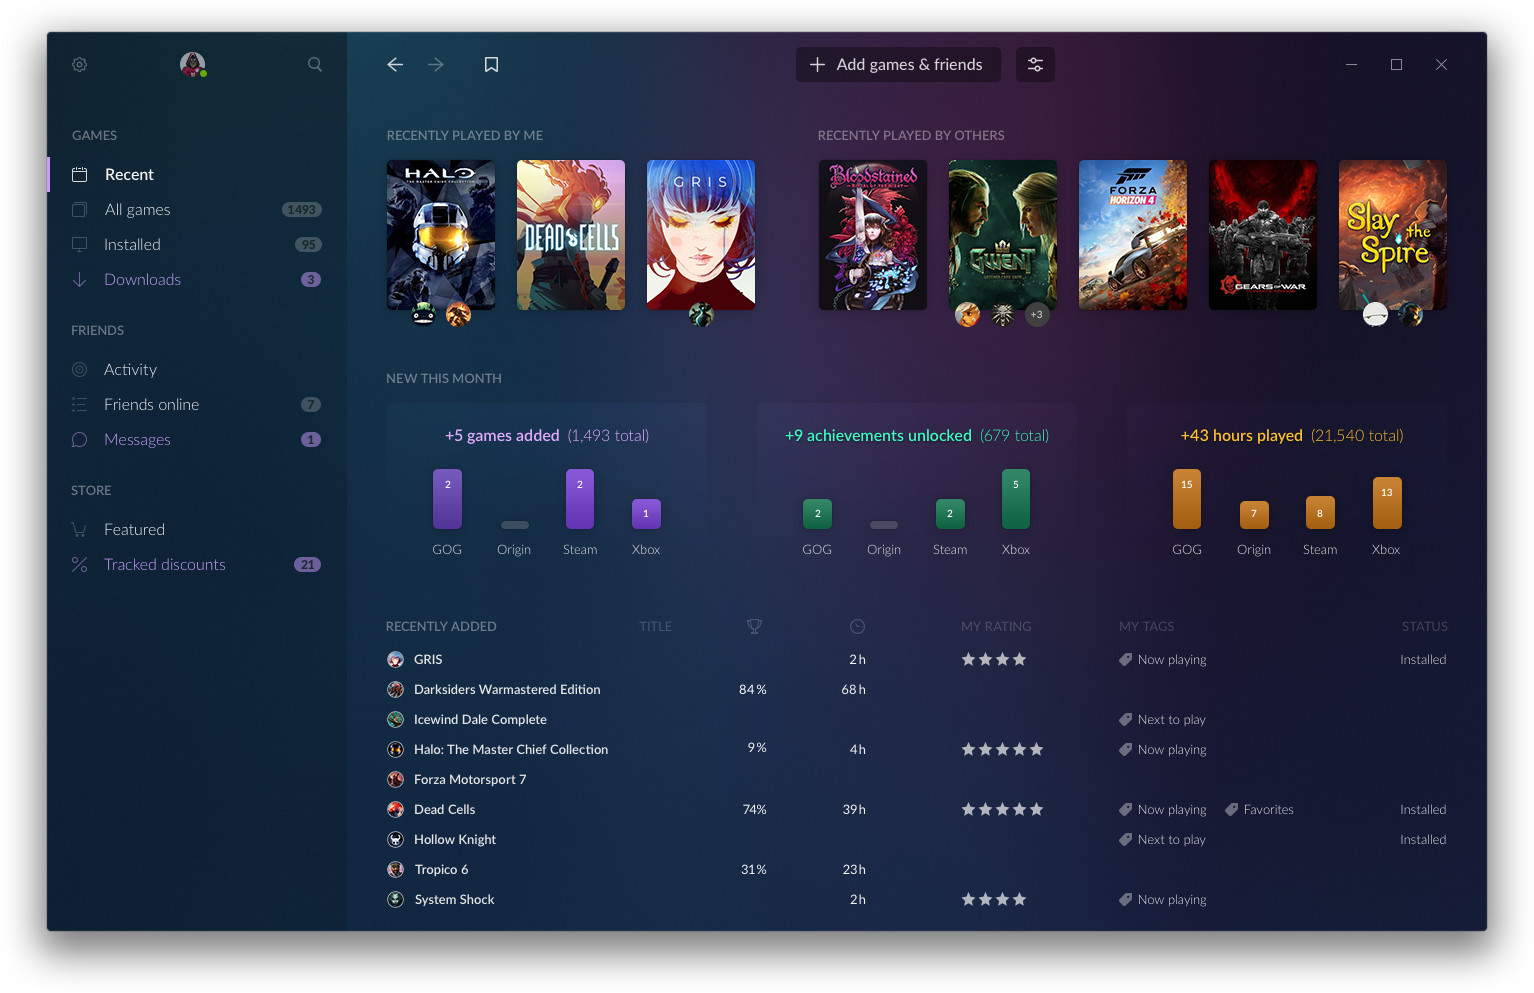 GOG's Galaxy 2 0 launcher aims to bring games from all